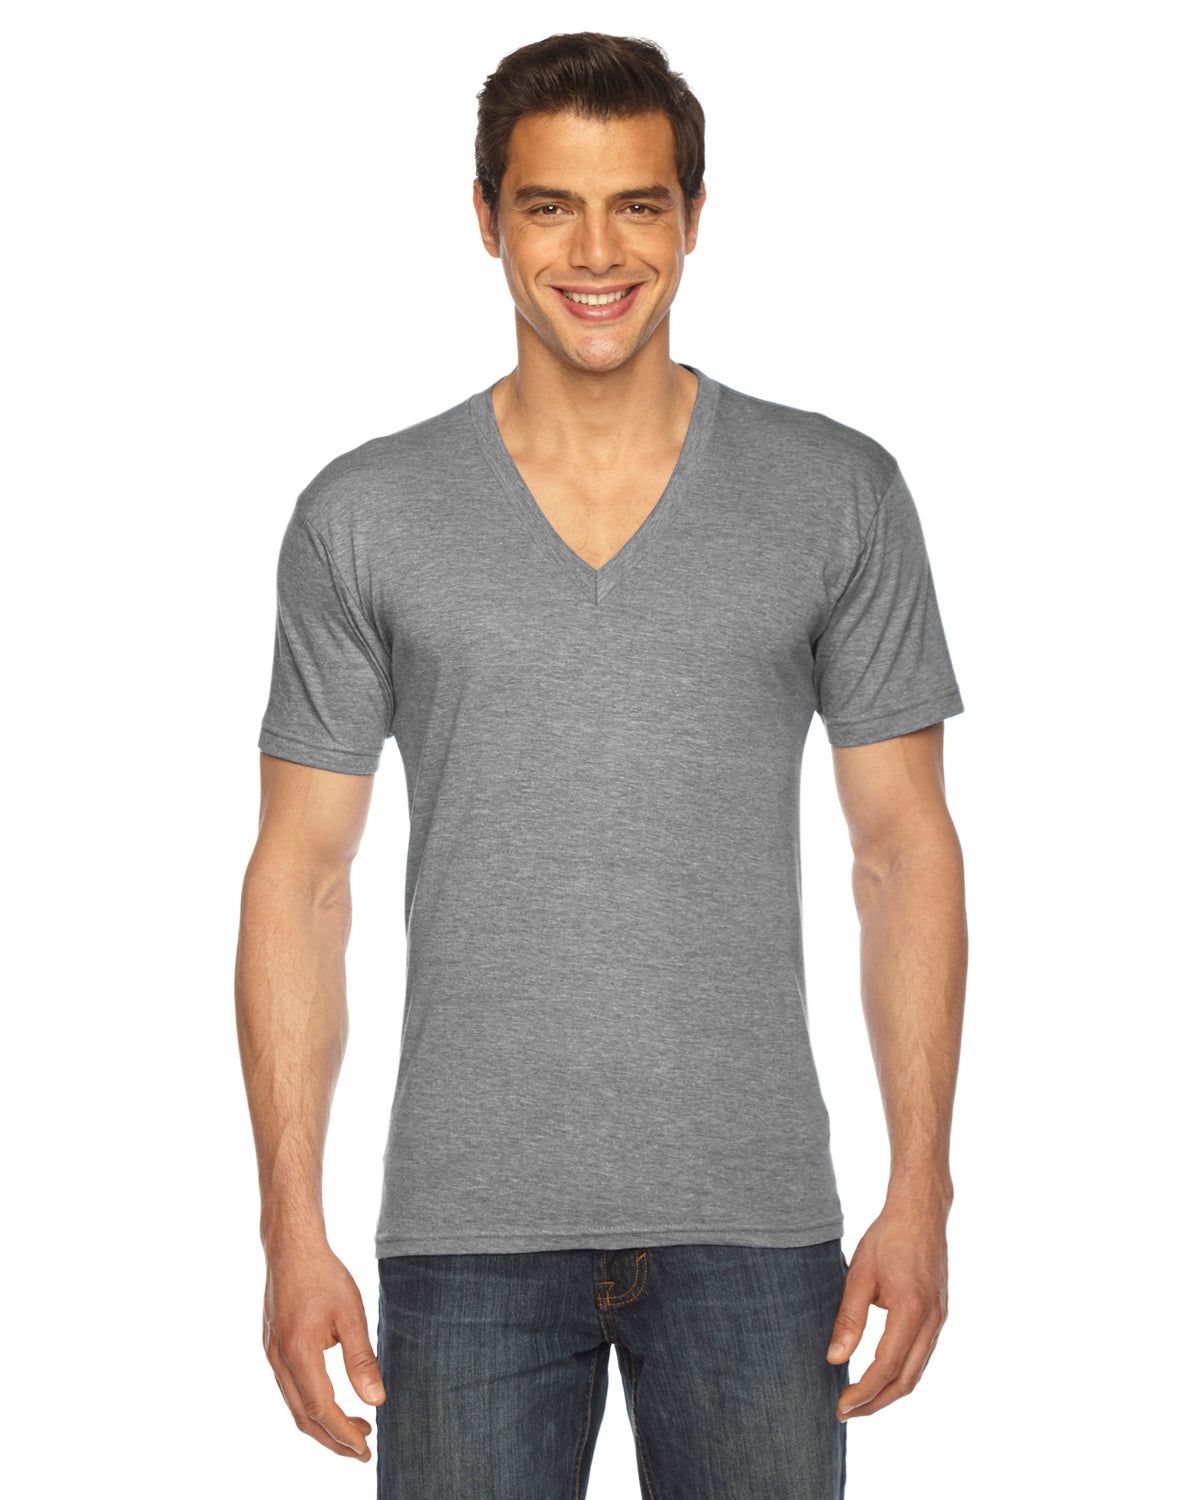 AMERICAN APPAREL UNISEX TRI-BLEND SHORT SLEEVE V NECK T-SHIRT